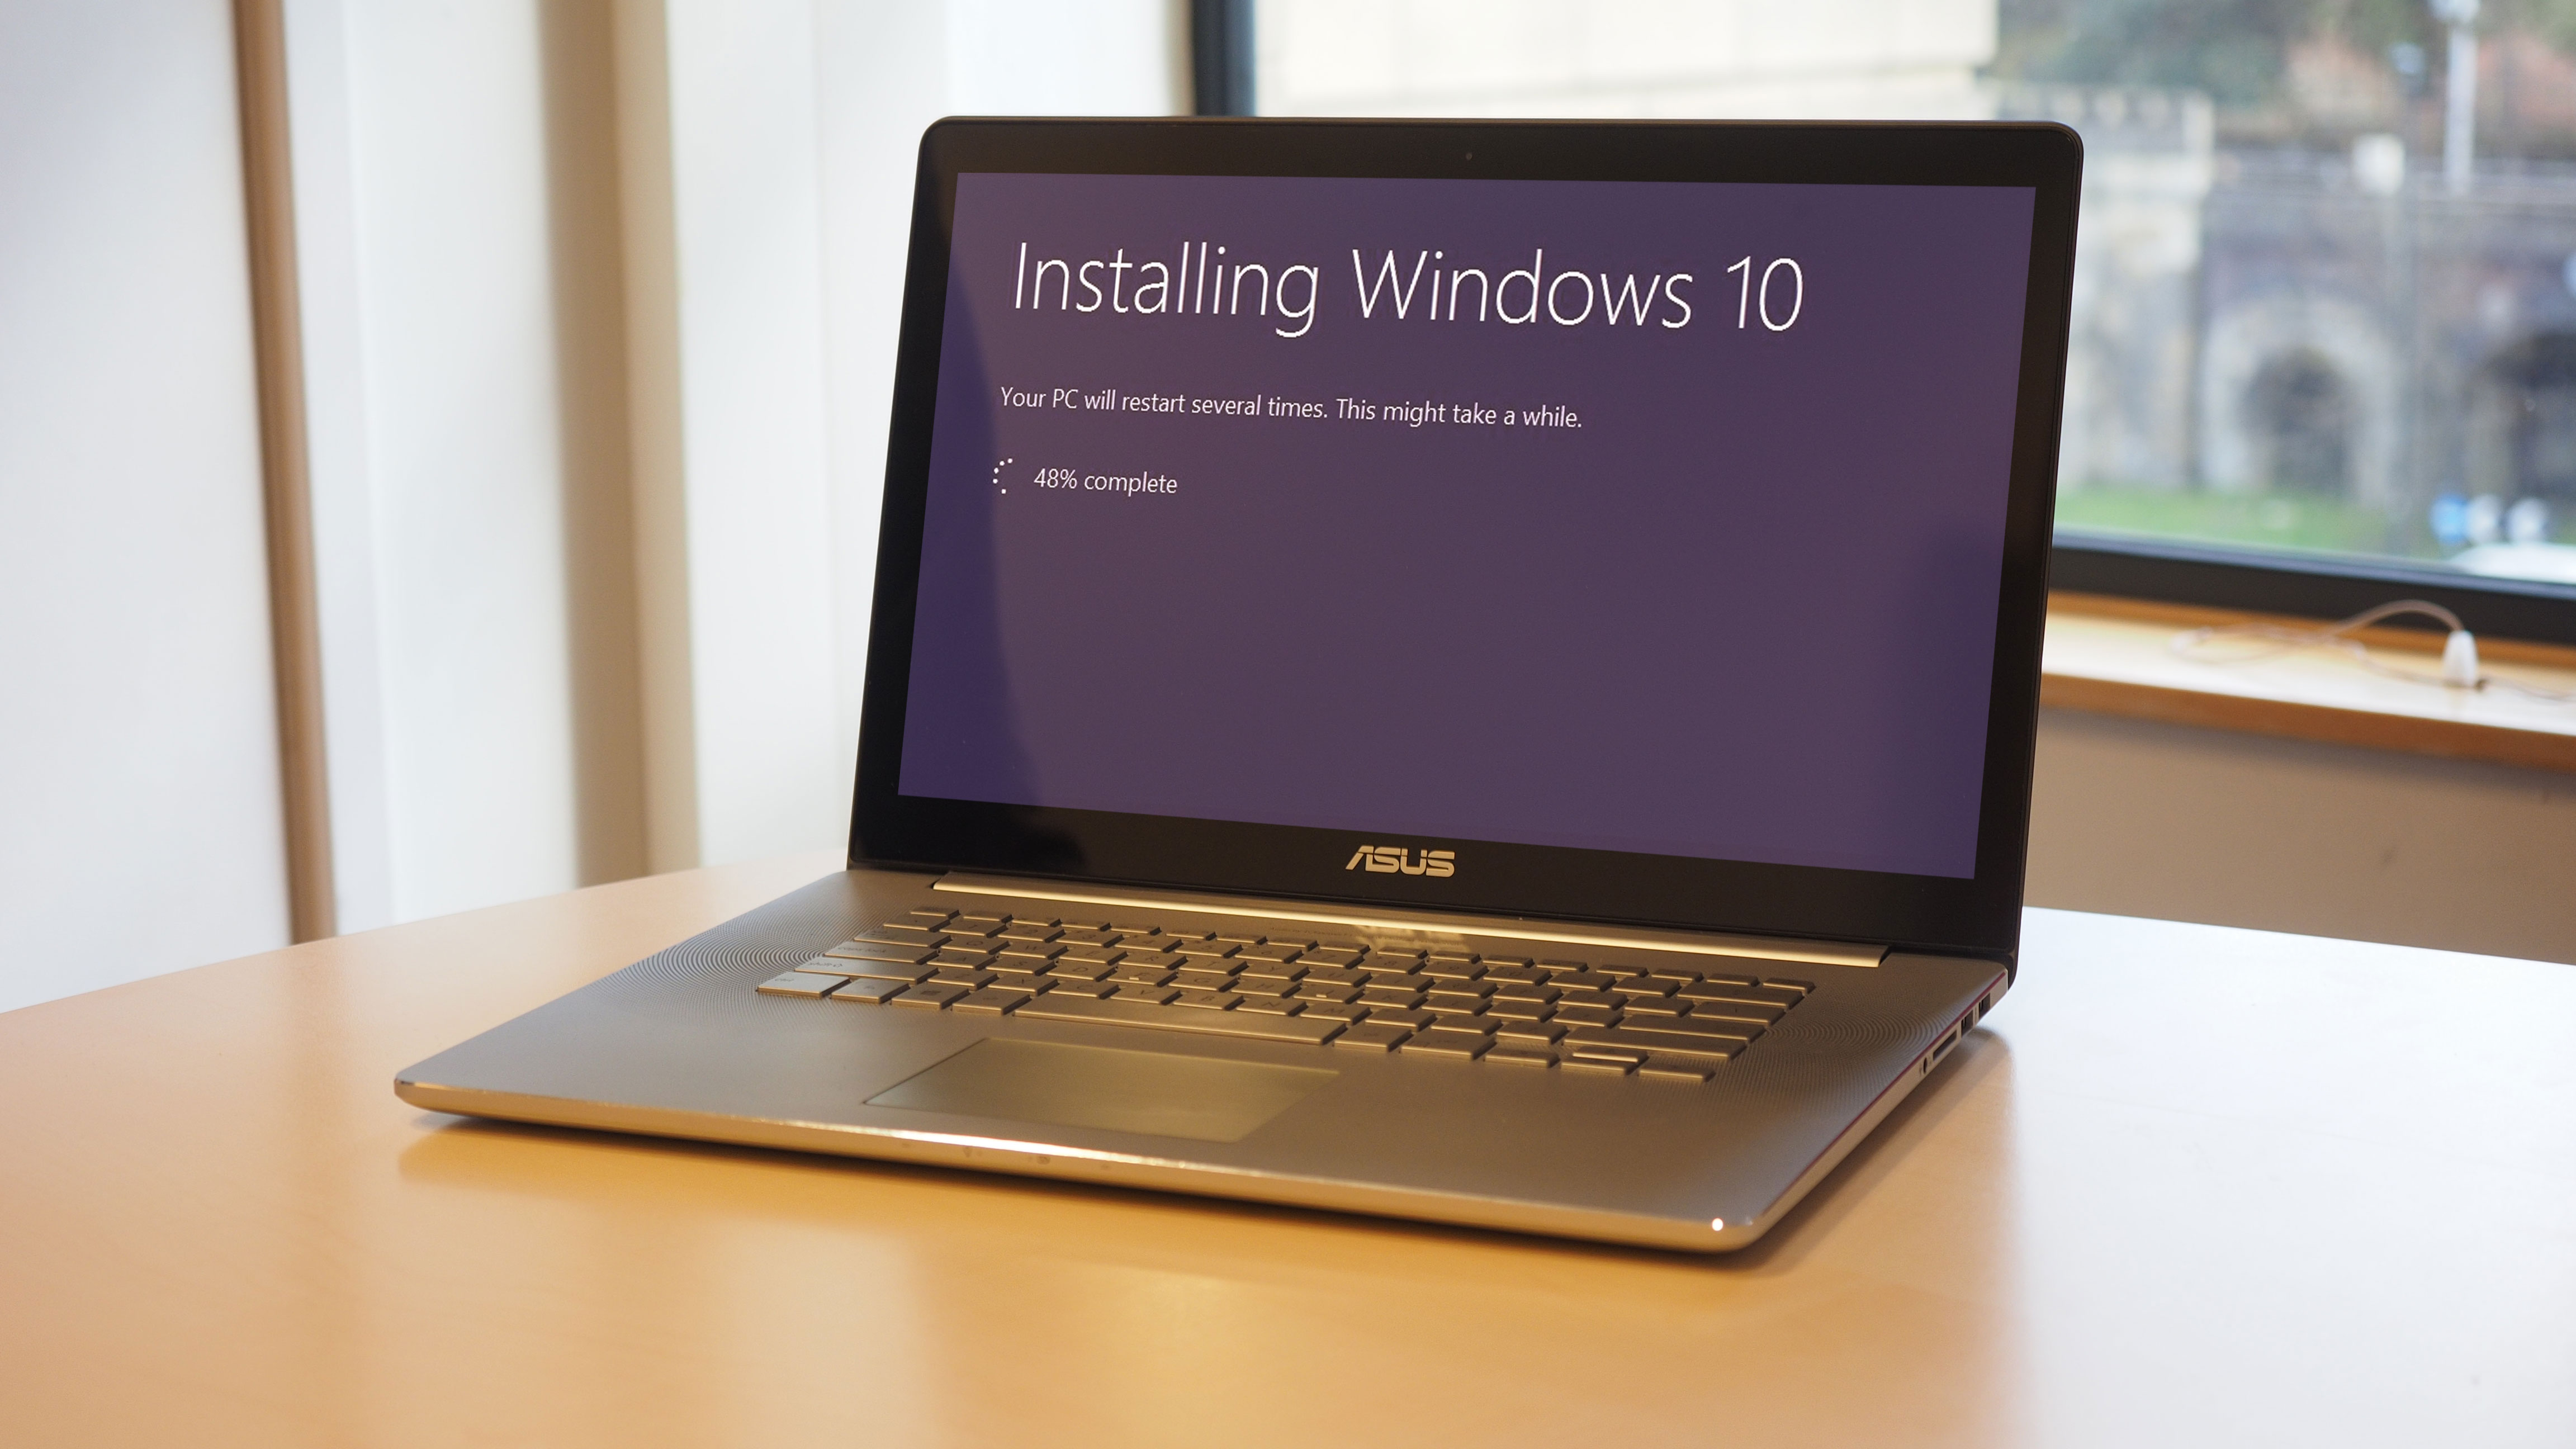 can i install windows 10 with windows 7 key